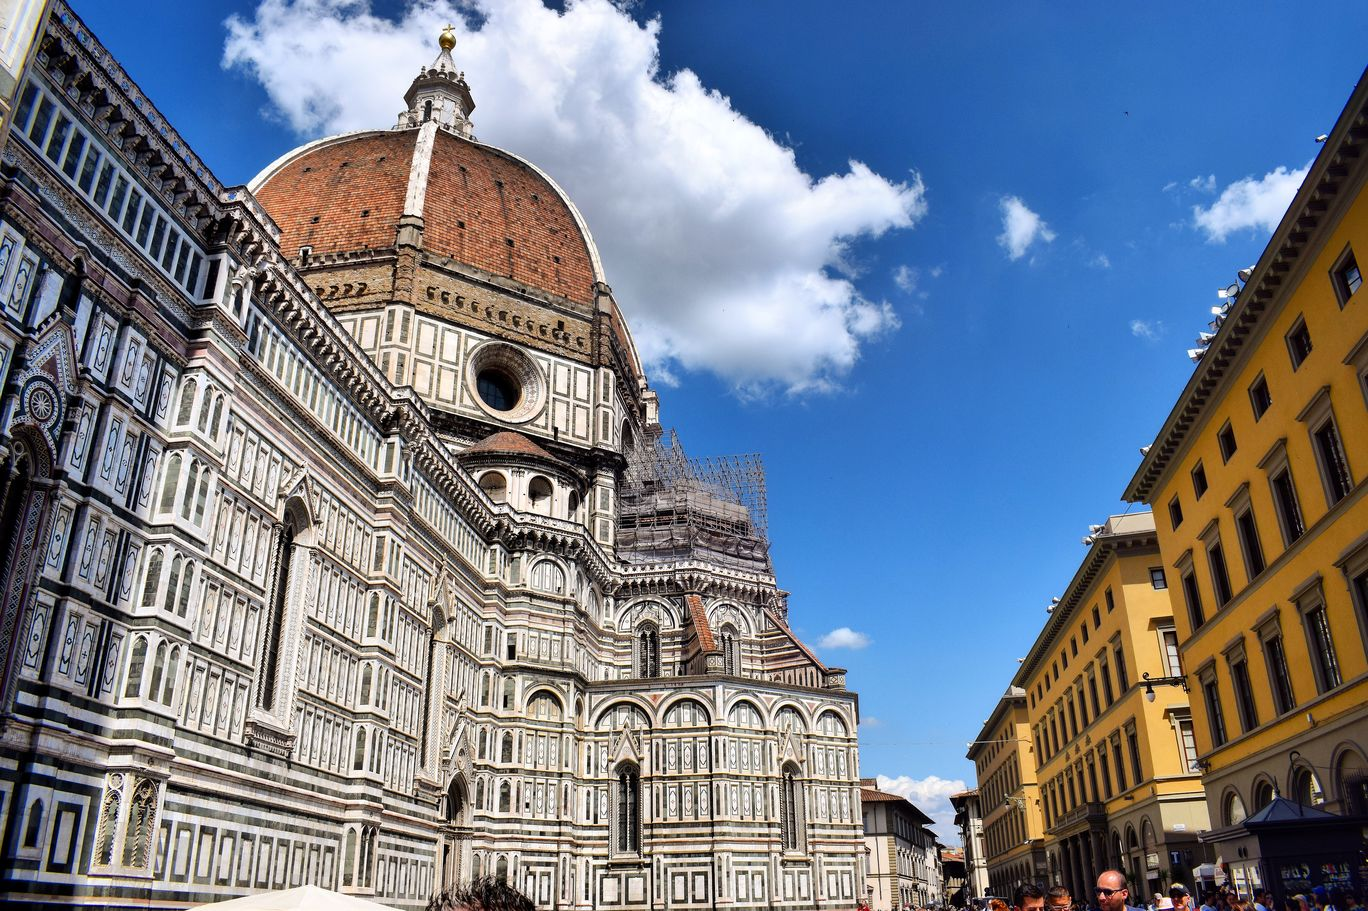 Photo of Piazza del Duomo By Nihaar